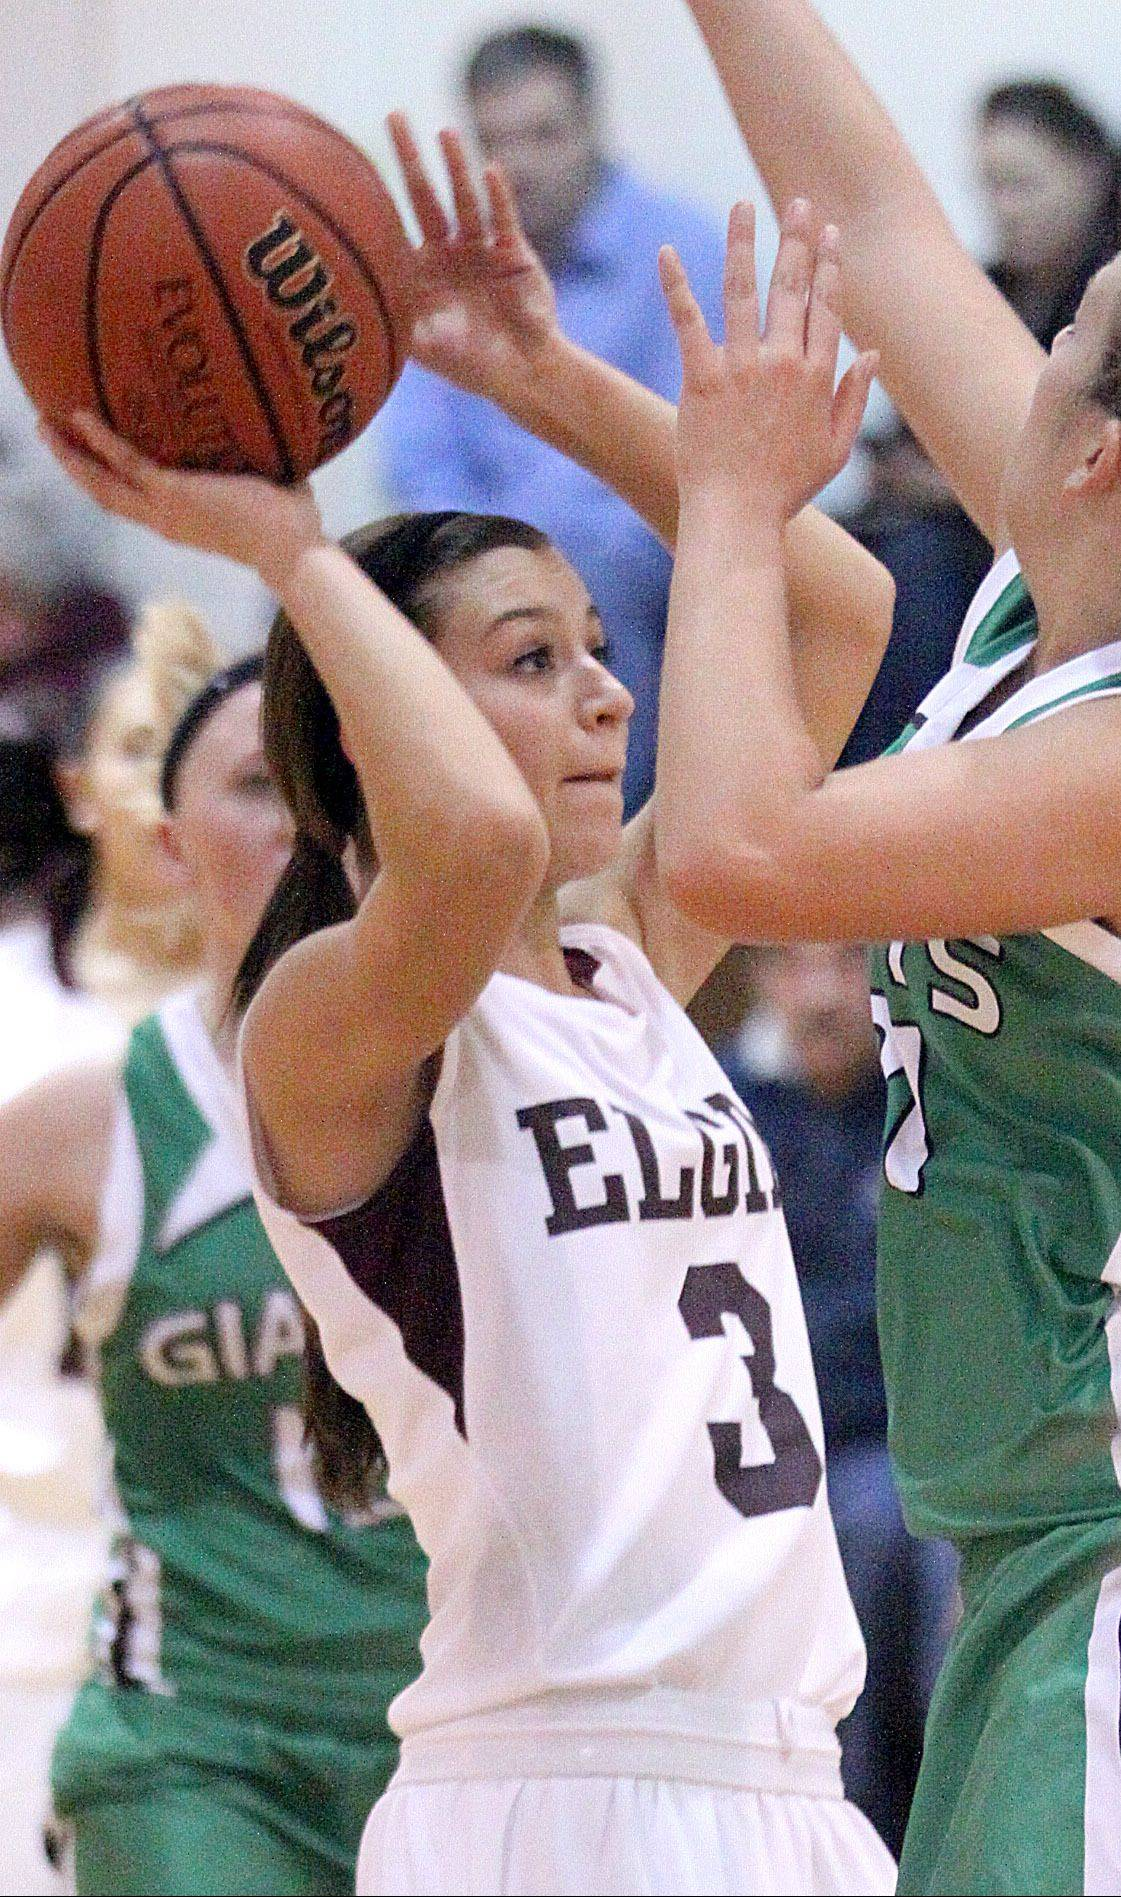 Elgin's Maggie Powers (3) takes a shot against Alden-Hebron earlier this season. The Maroons will take on Larkin tonight at Larkin in the first round of the Elgin City Classic.